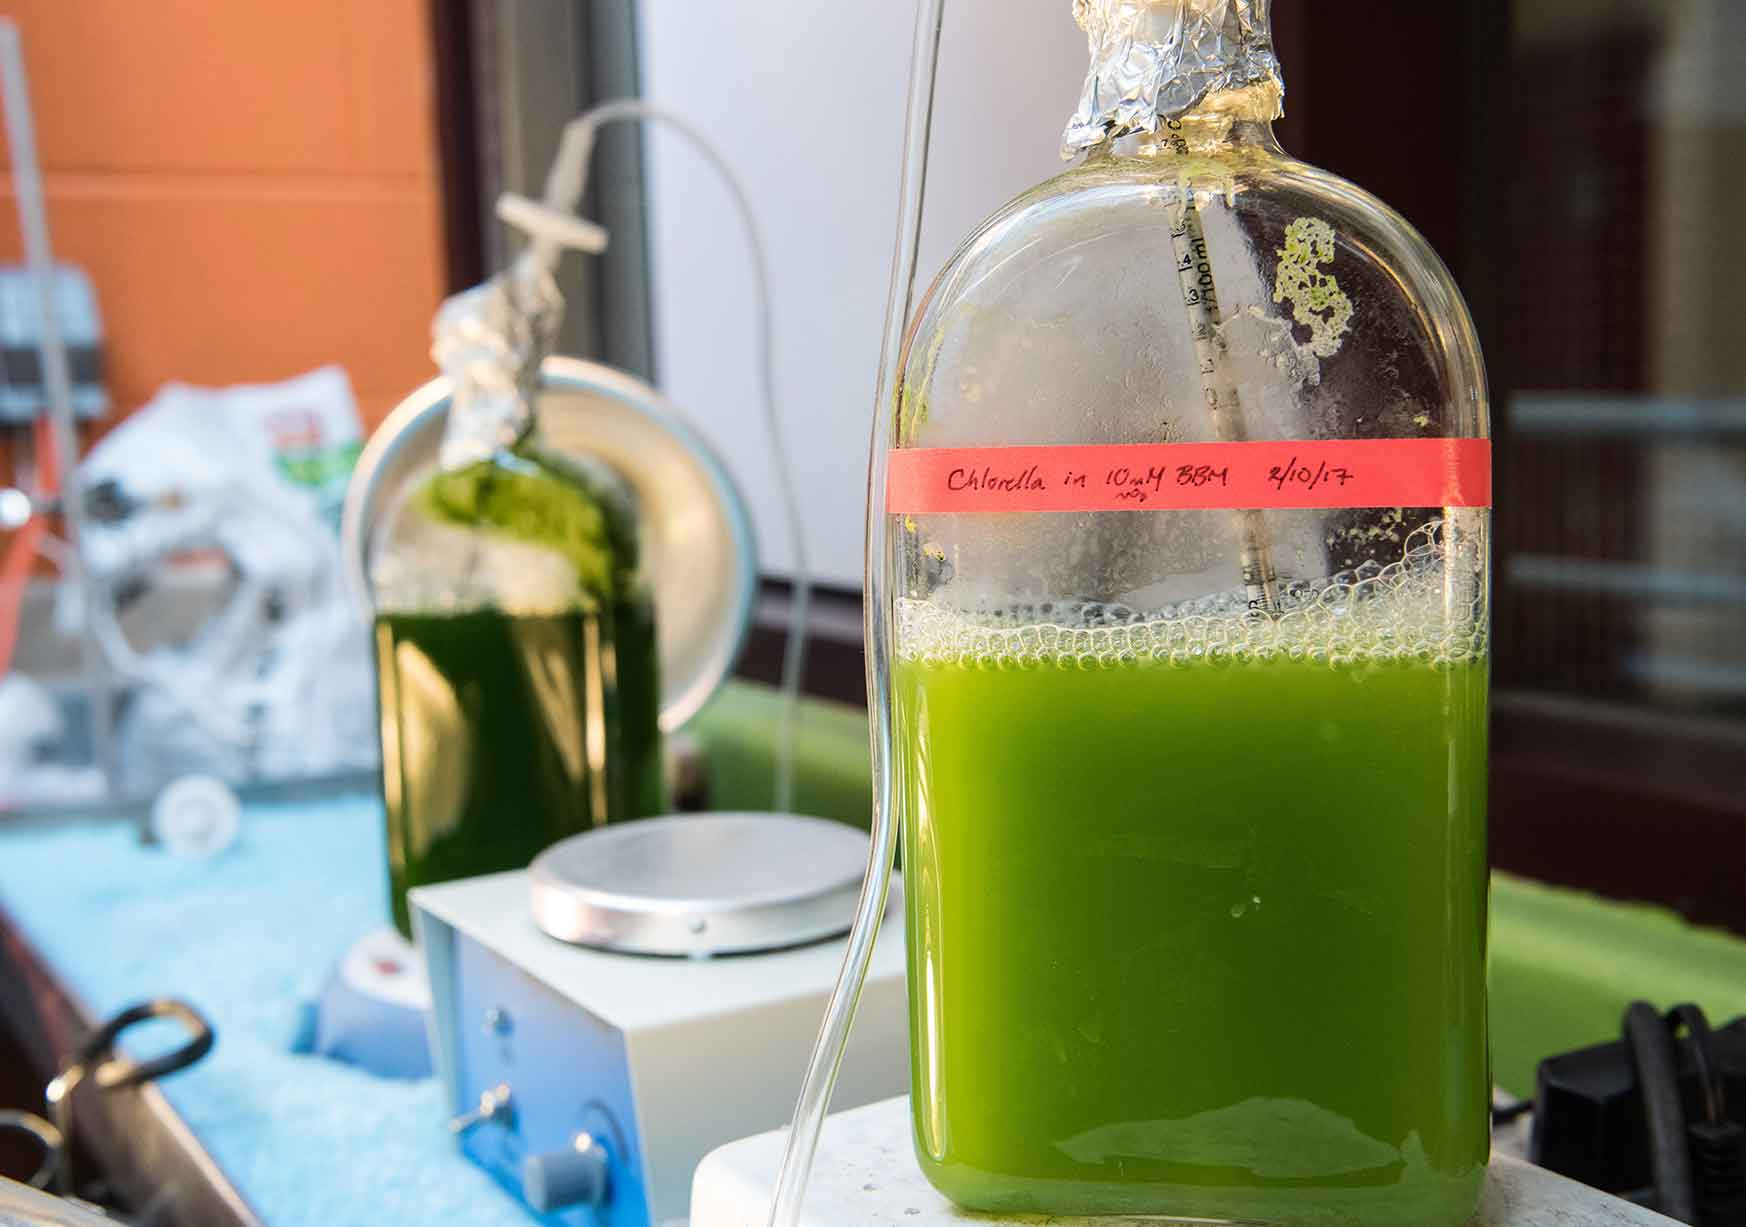 Photo shows a large bottle filled with a green liquid.